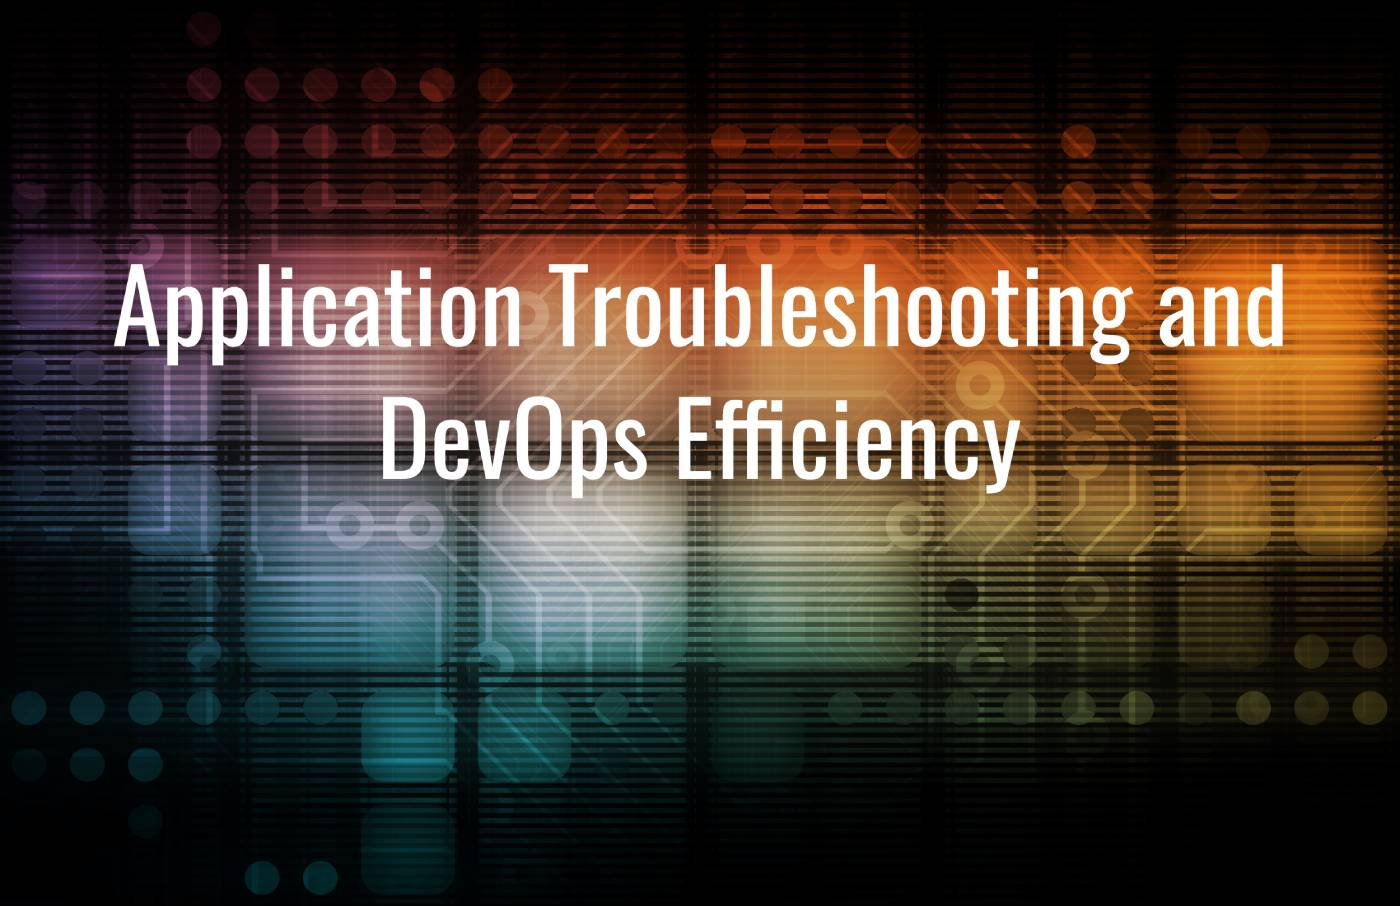 Centralized Log Management and APM/Observability for Application Troubleshooting and DevOps Efficiency